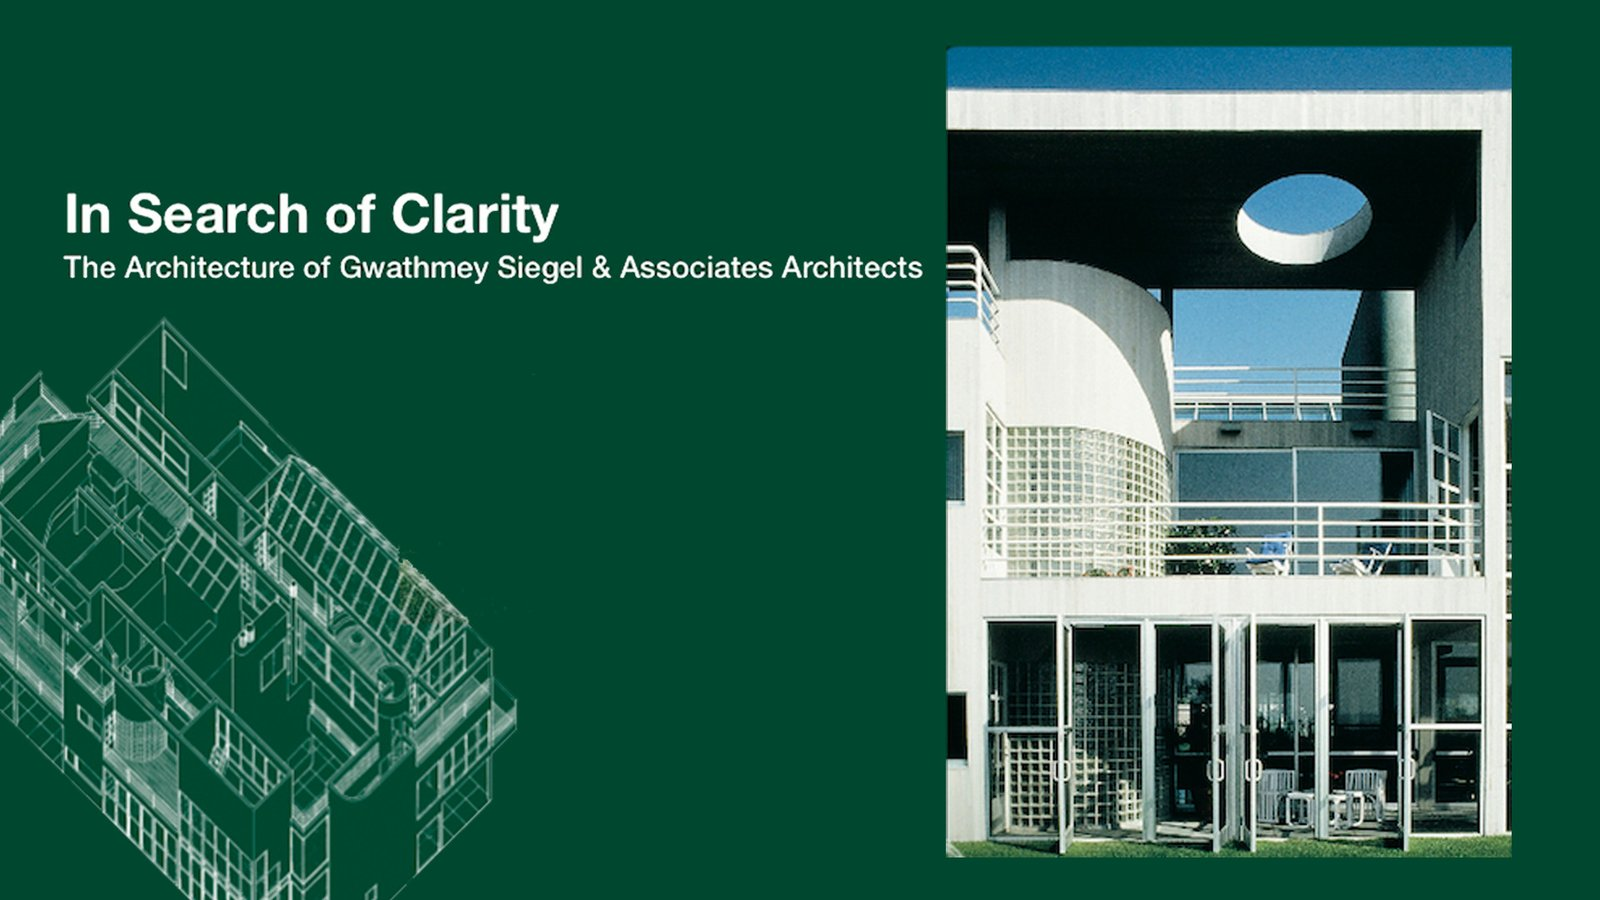 The Architecture of Gwathmey Siegel - In Search of Clarity